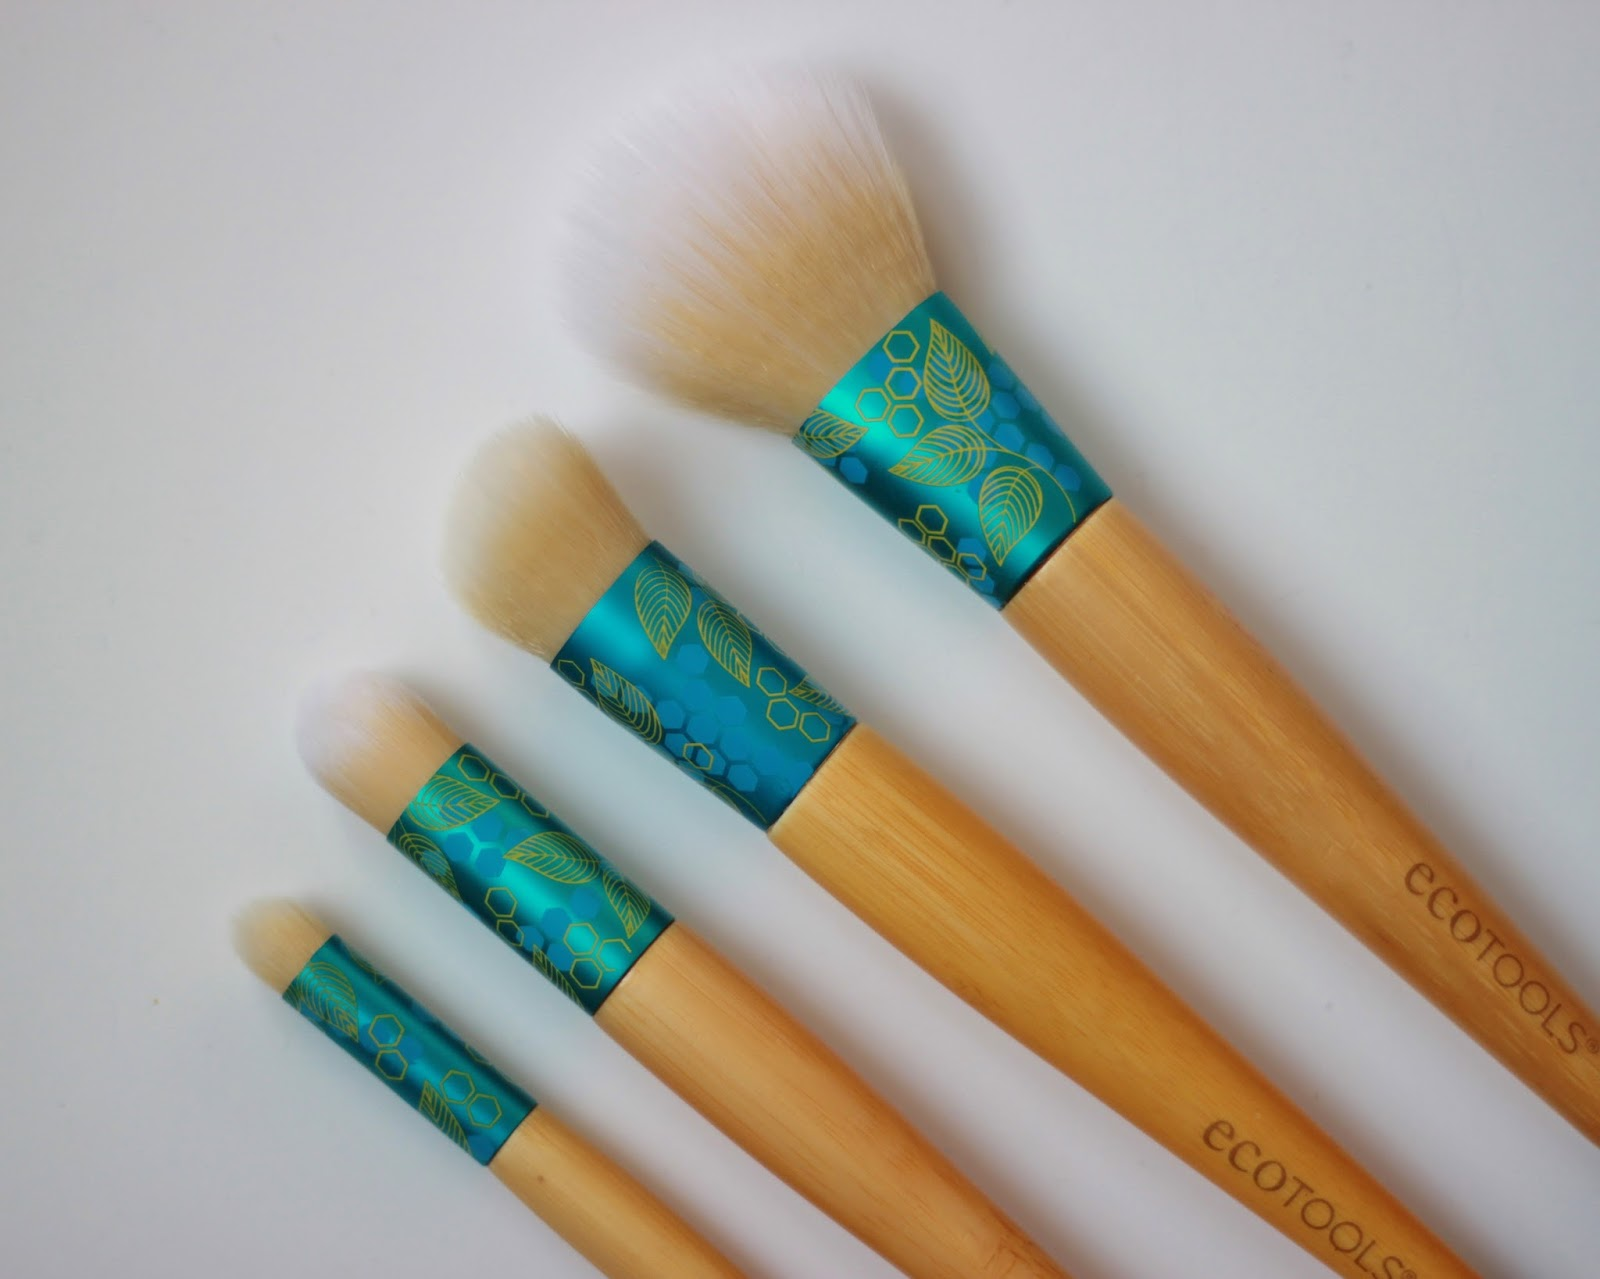 ecotools complexion collection makeup brushes